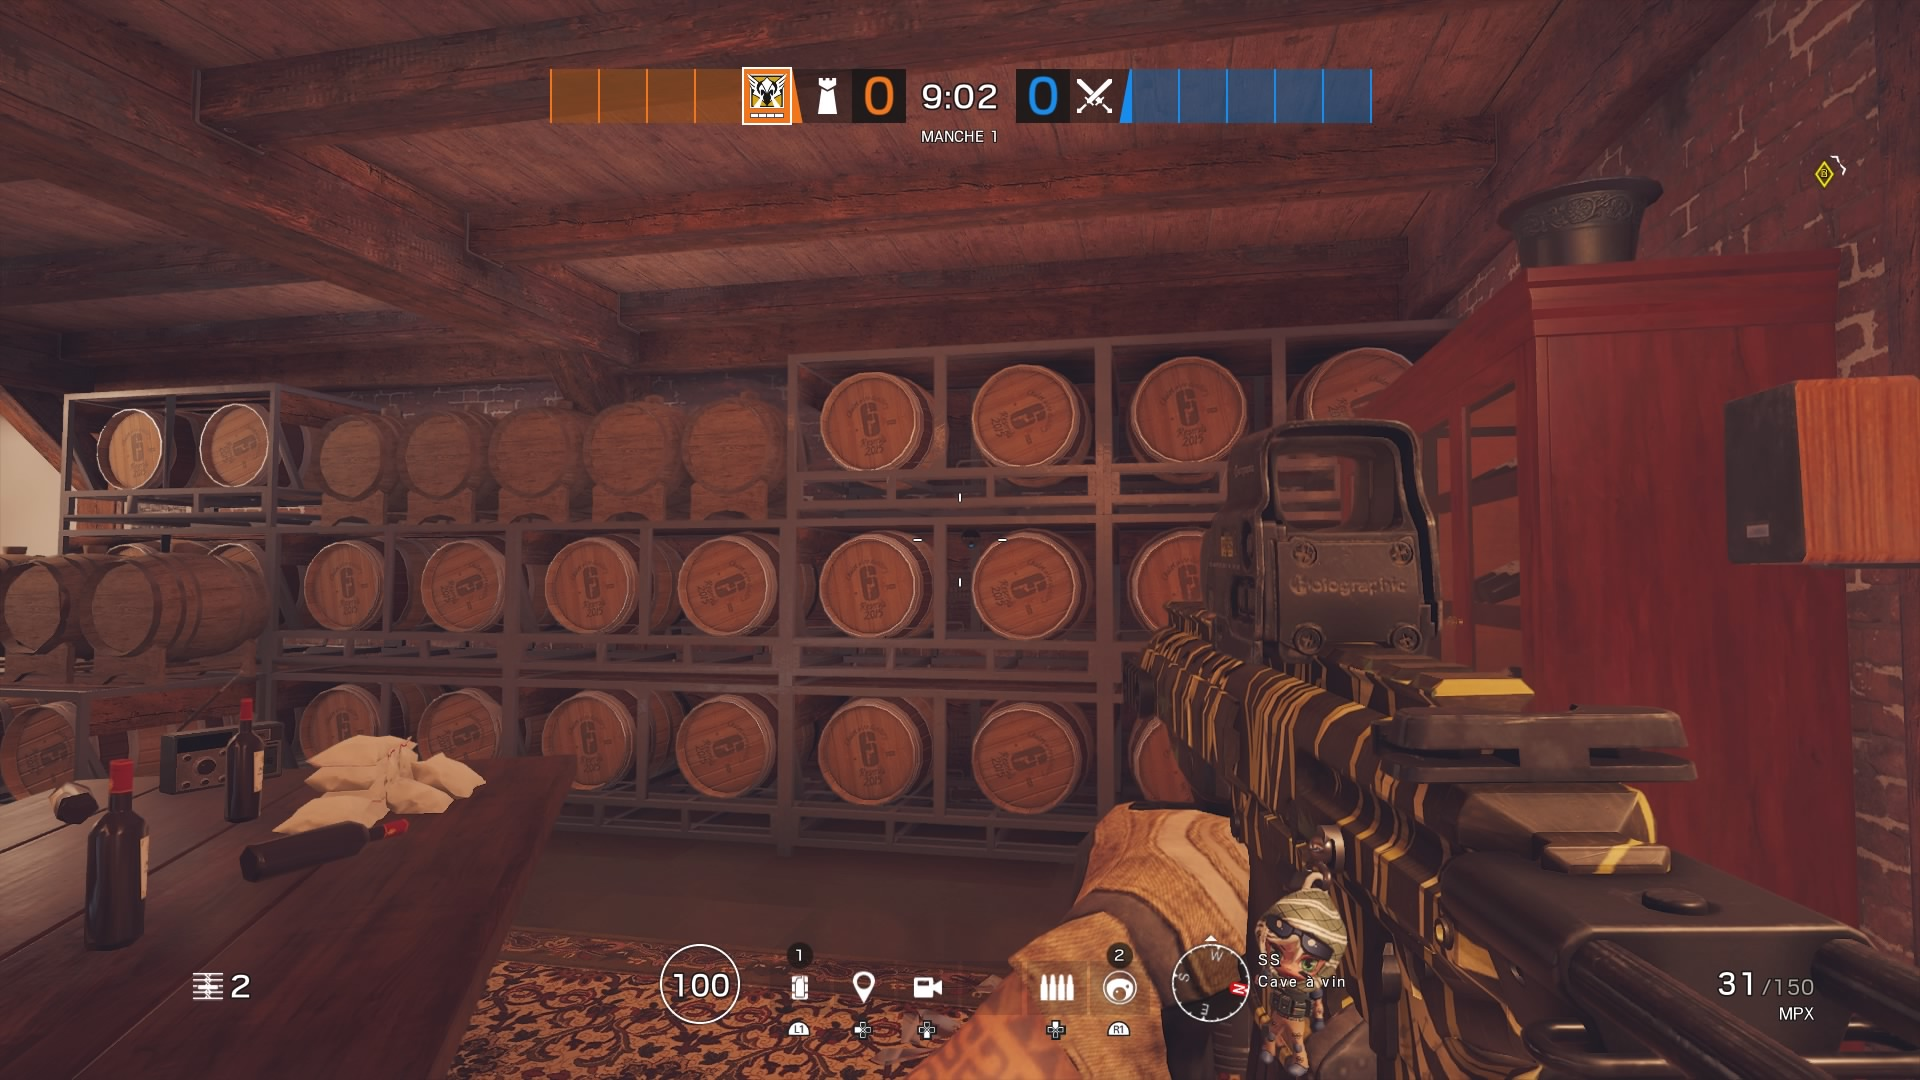 tom_clancy_s_rainbow_six_r_siege_20190724113521.jpg